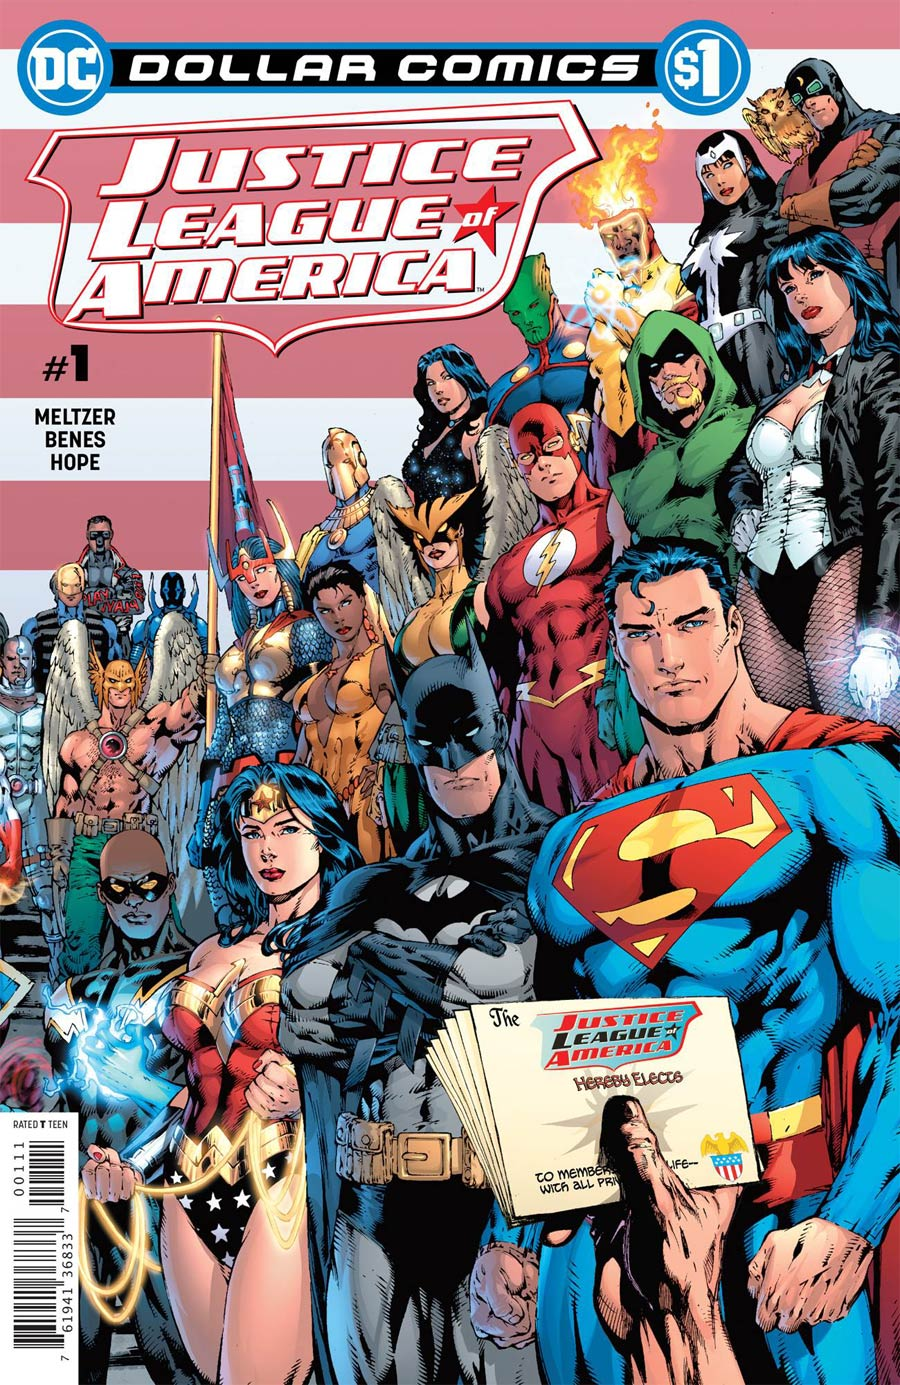 Dollar Comics: Justice League Of America #1 (2020)